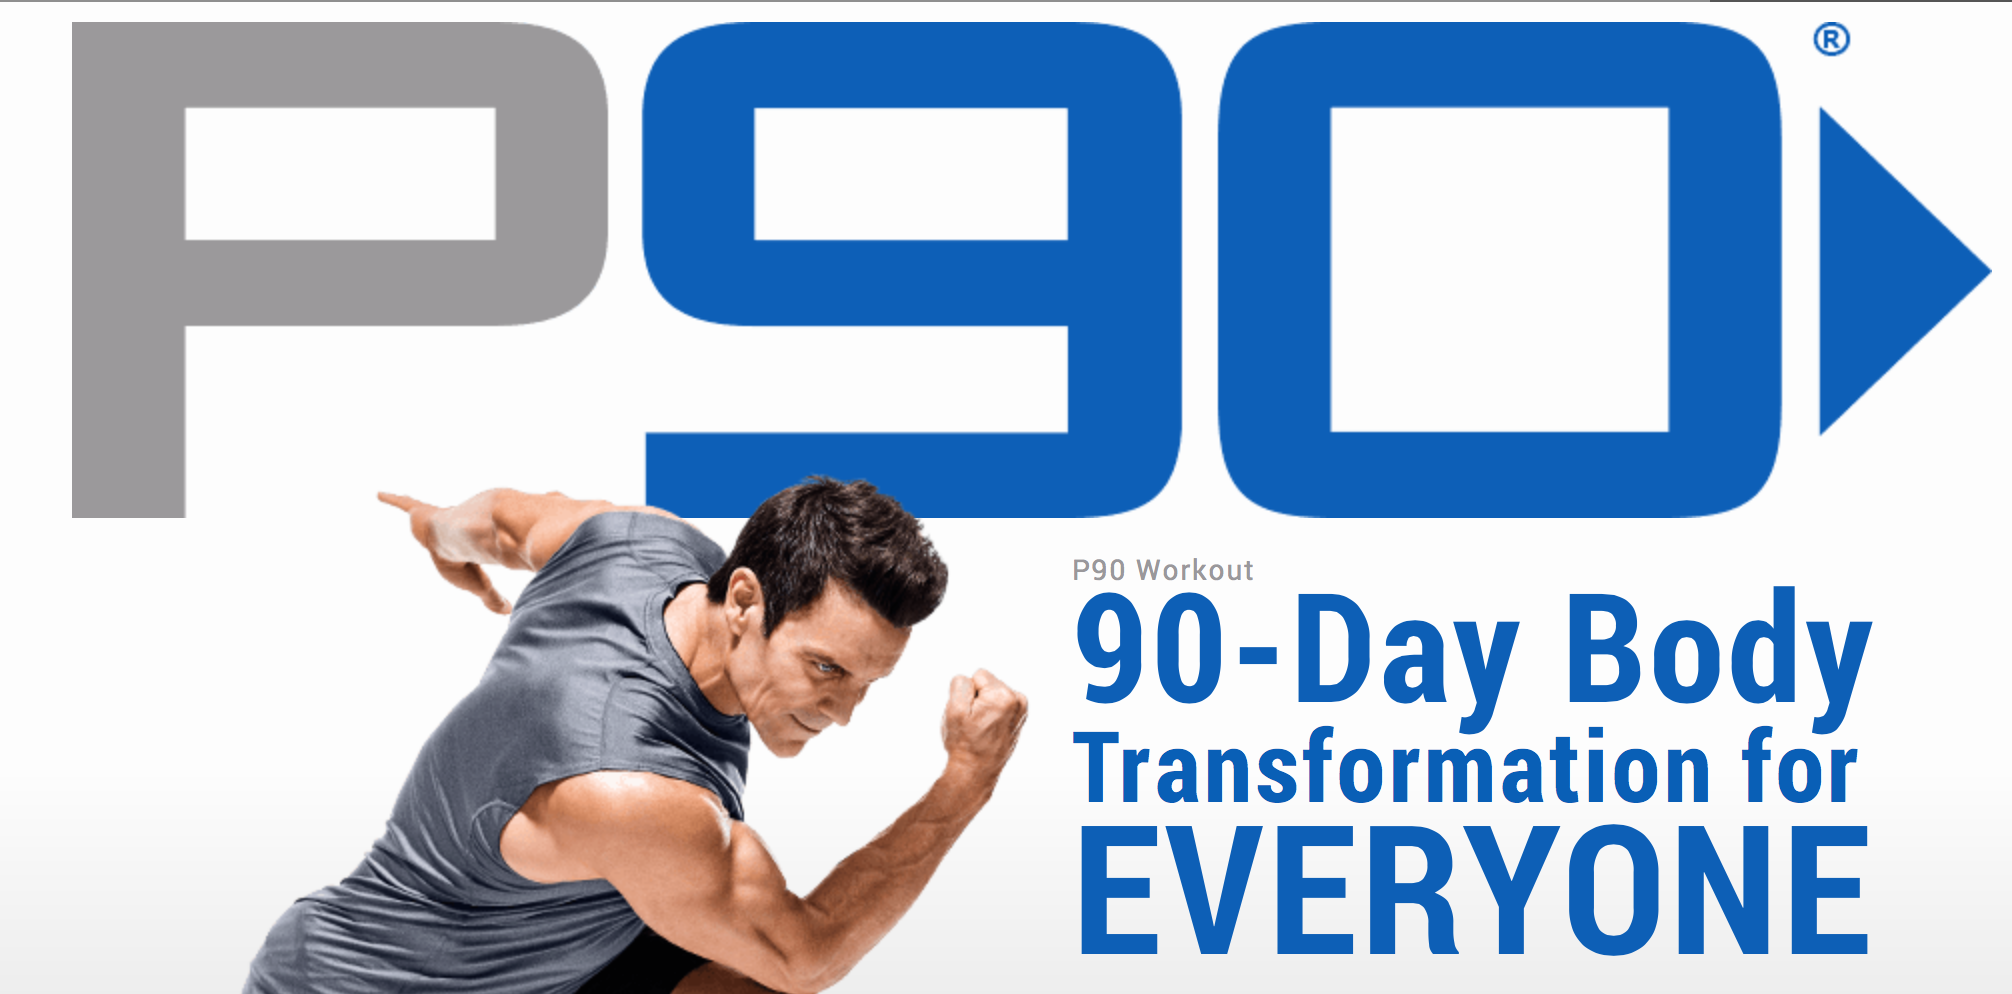 P90 Workout Packages - No Tricks, Just a Treat 1 Day left! - Foxboro